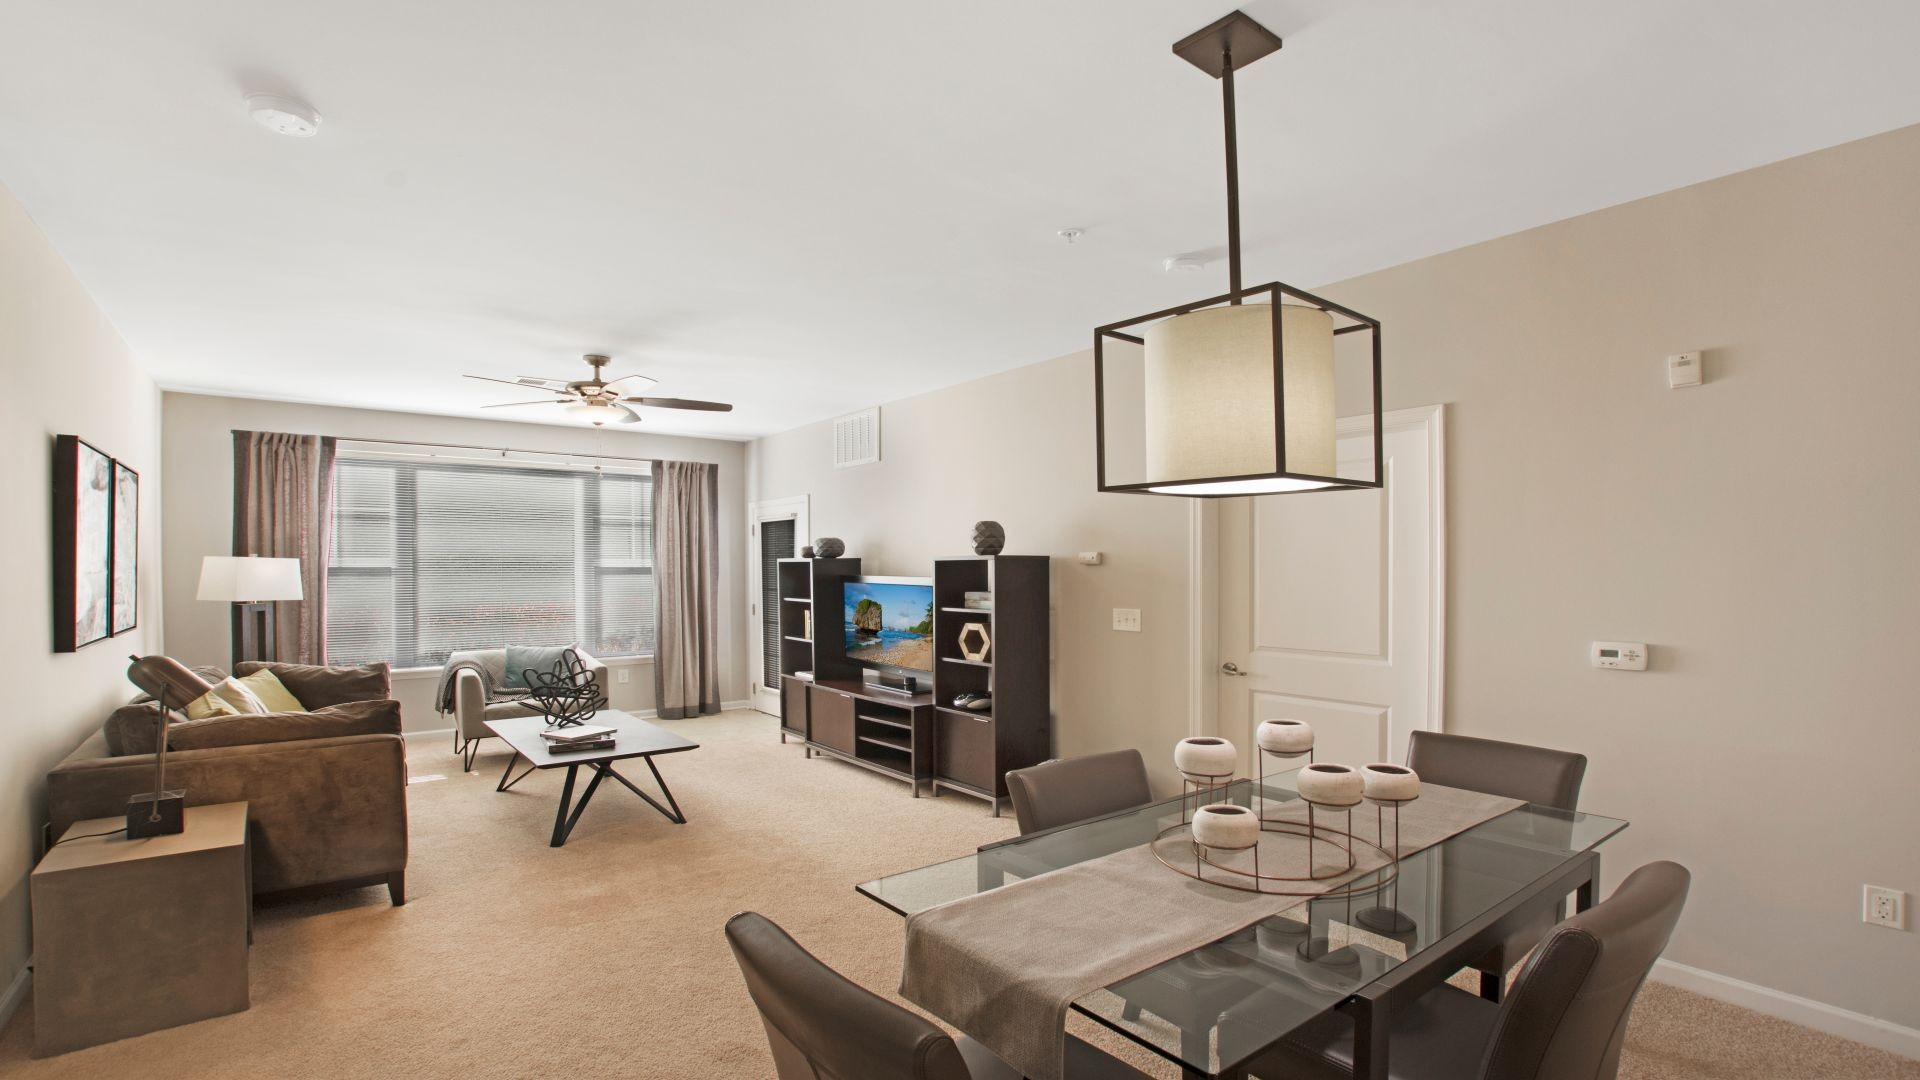 Interior image apartment living room with furniture and dining table with chairs